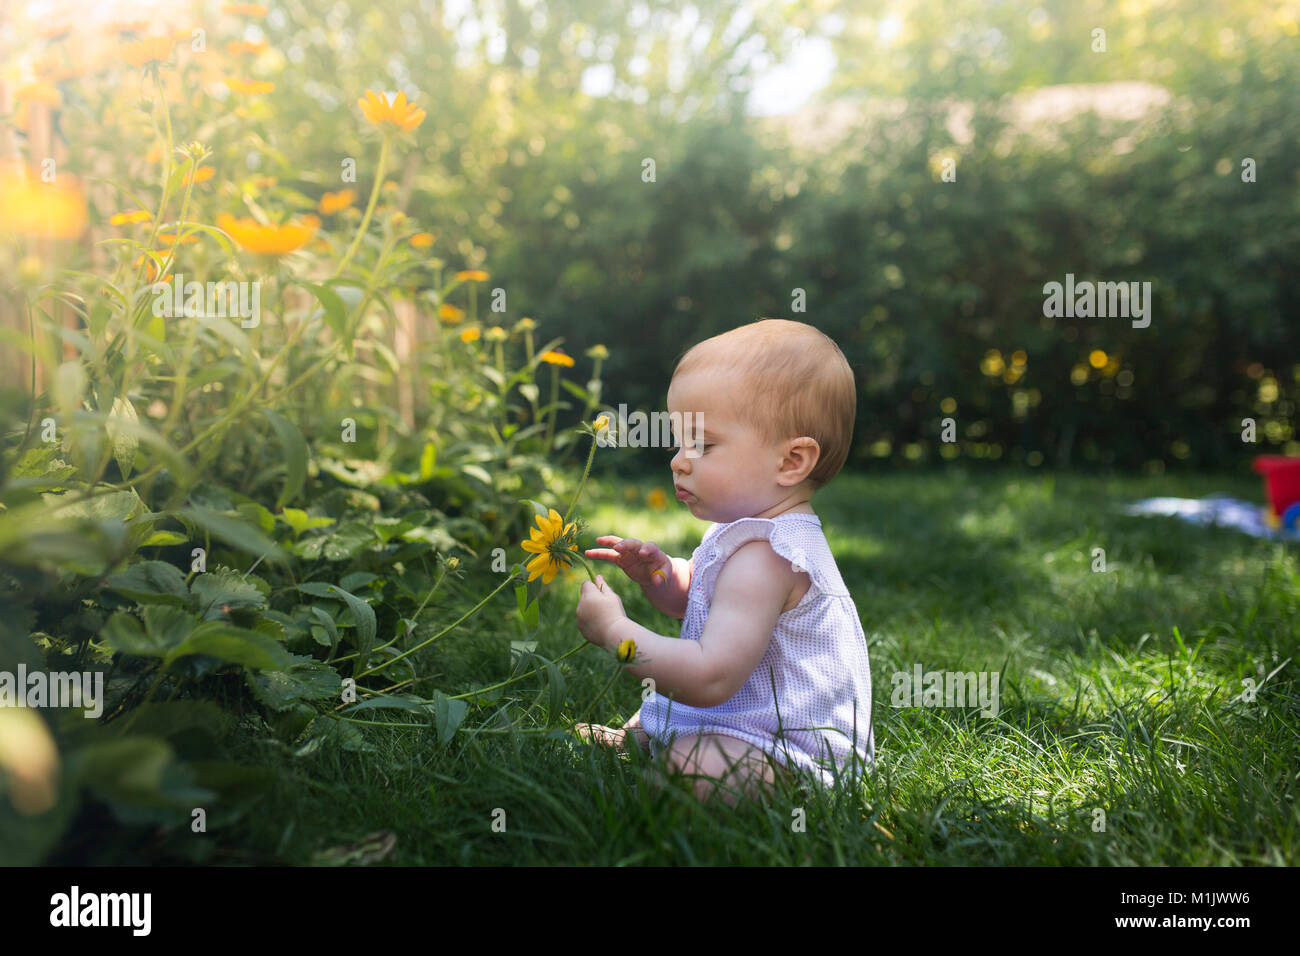 Baby Girl Sitting in Grass Holding Flower Photo Stock